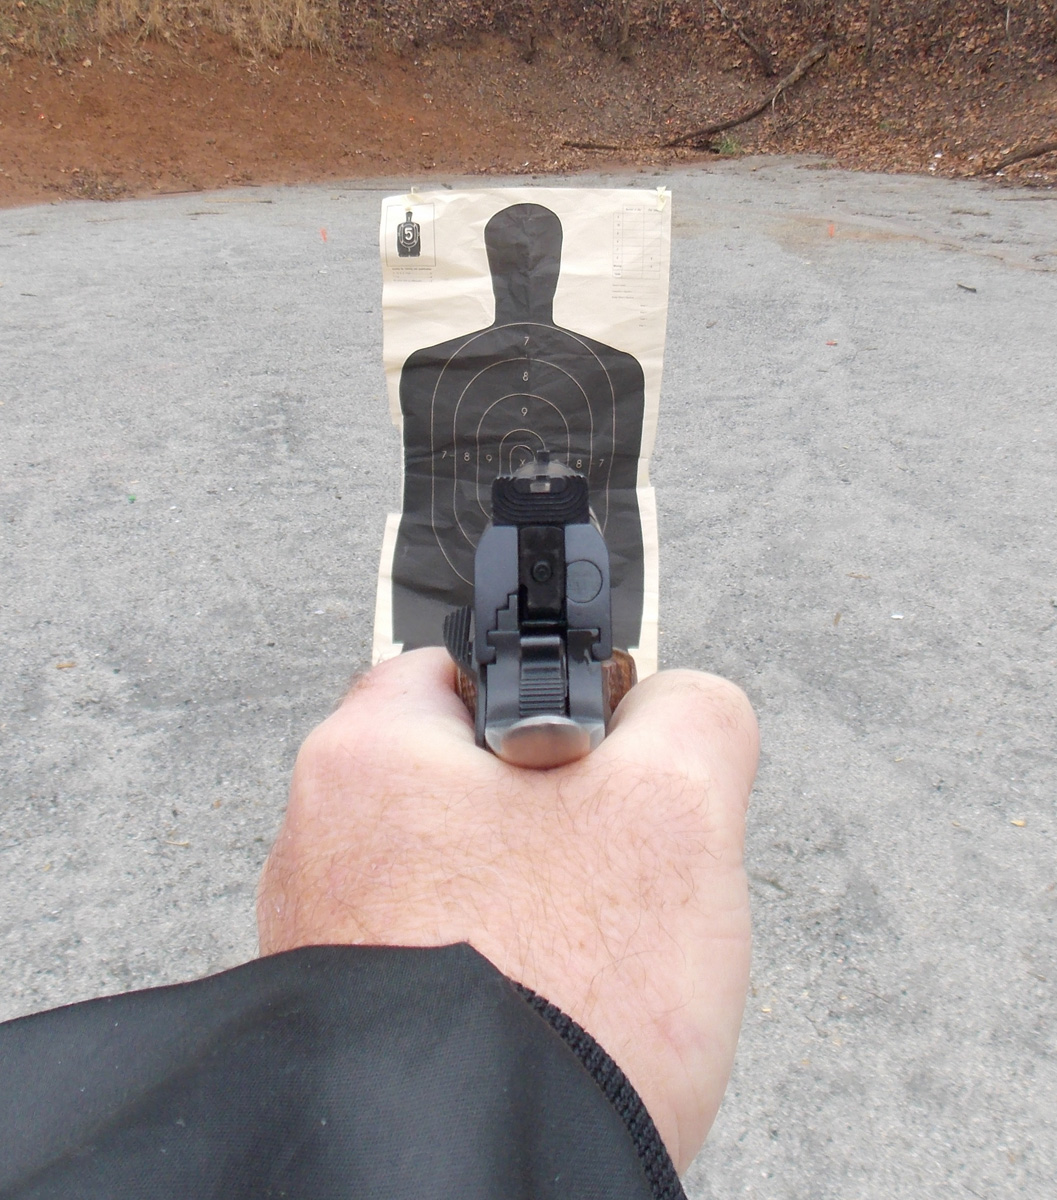 View down pistol sights at a target